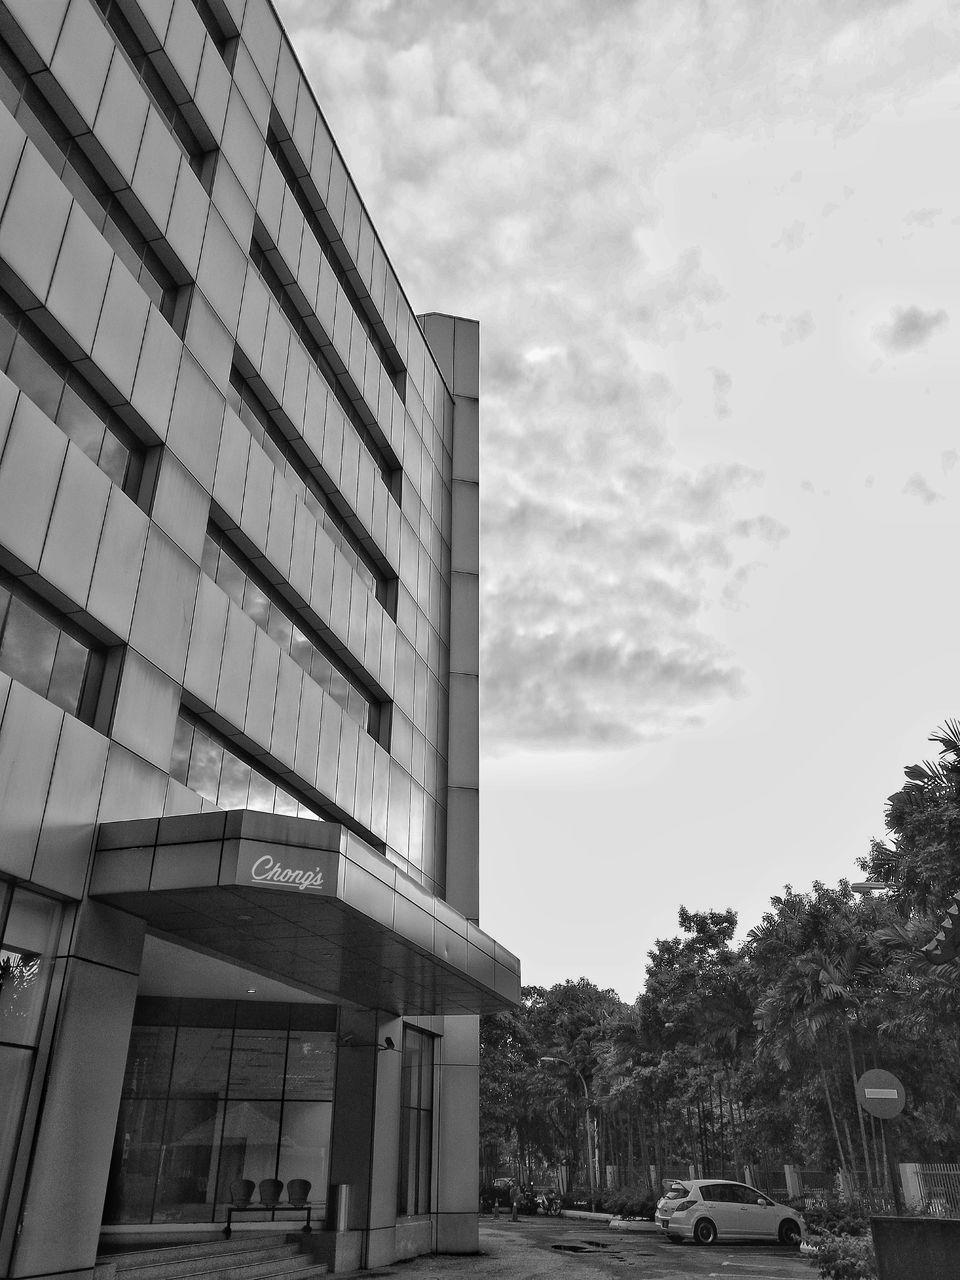 architecture, sky, building exterior, built structure, cloud - sky, outdoors, day, tree, car, low angle view, no people, city